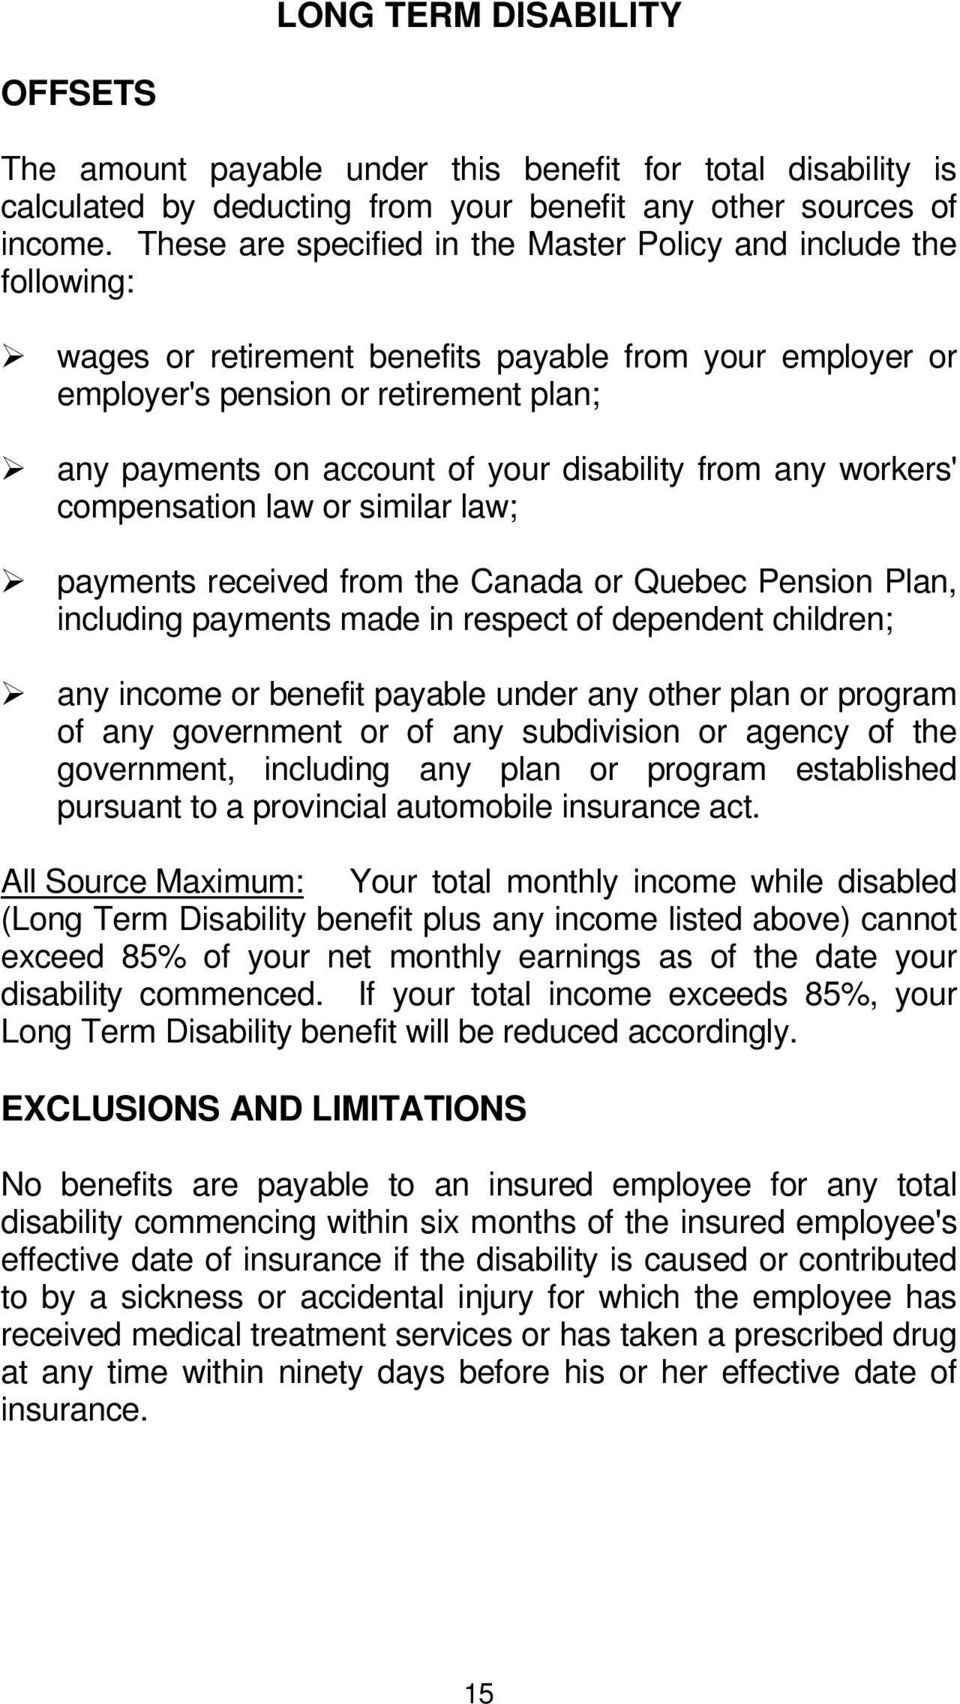 disability from any workers' compensation law or similar law; payments received from the Canada or Quebec Pension Plan, including payments made in respect of dependent children; any income or benefit